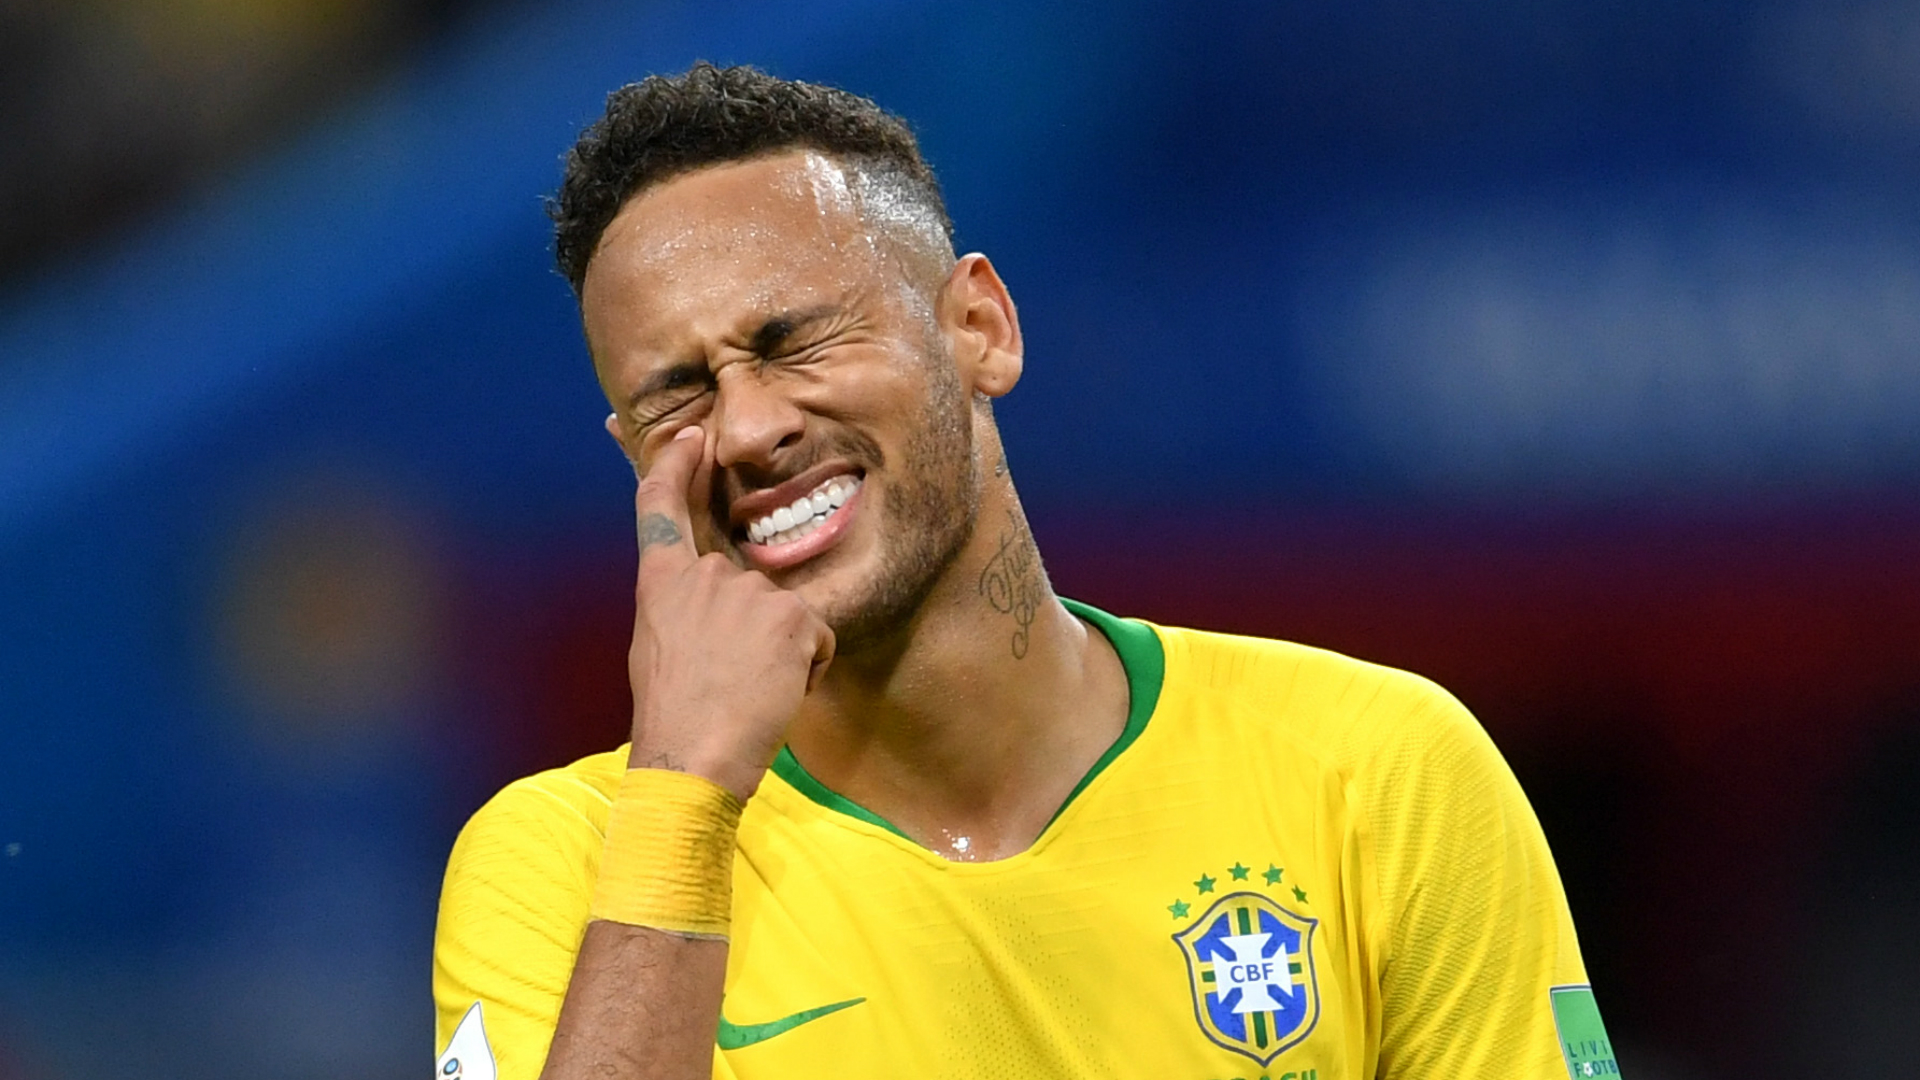 Buffon makes a prediction on Neymar after World Cup flaws